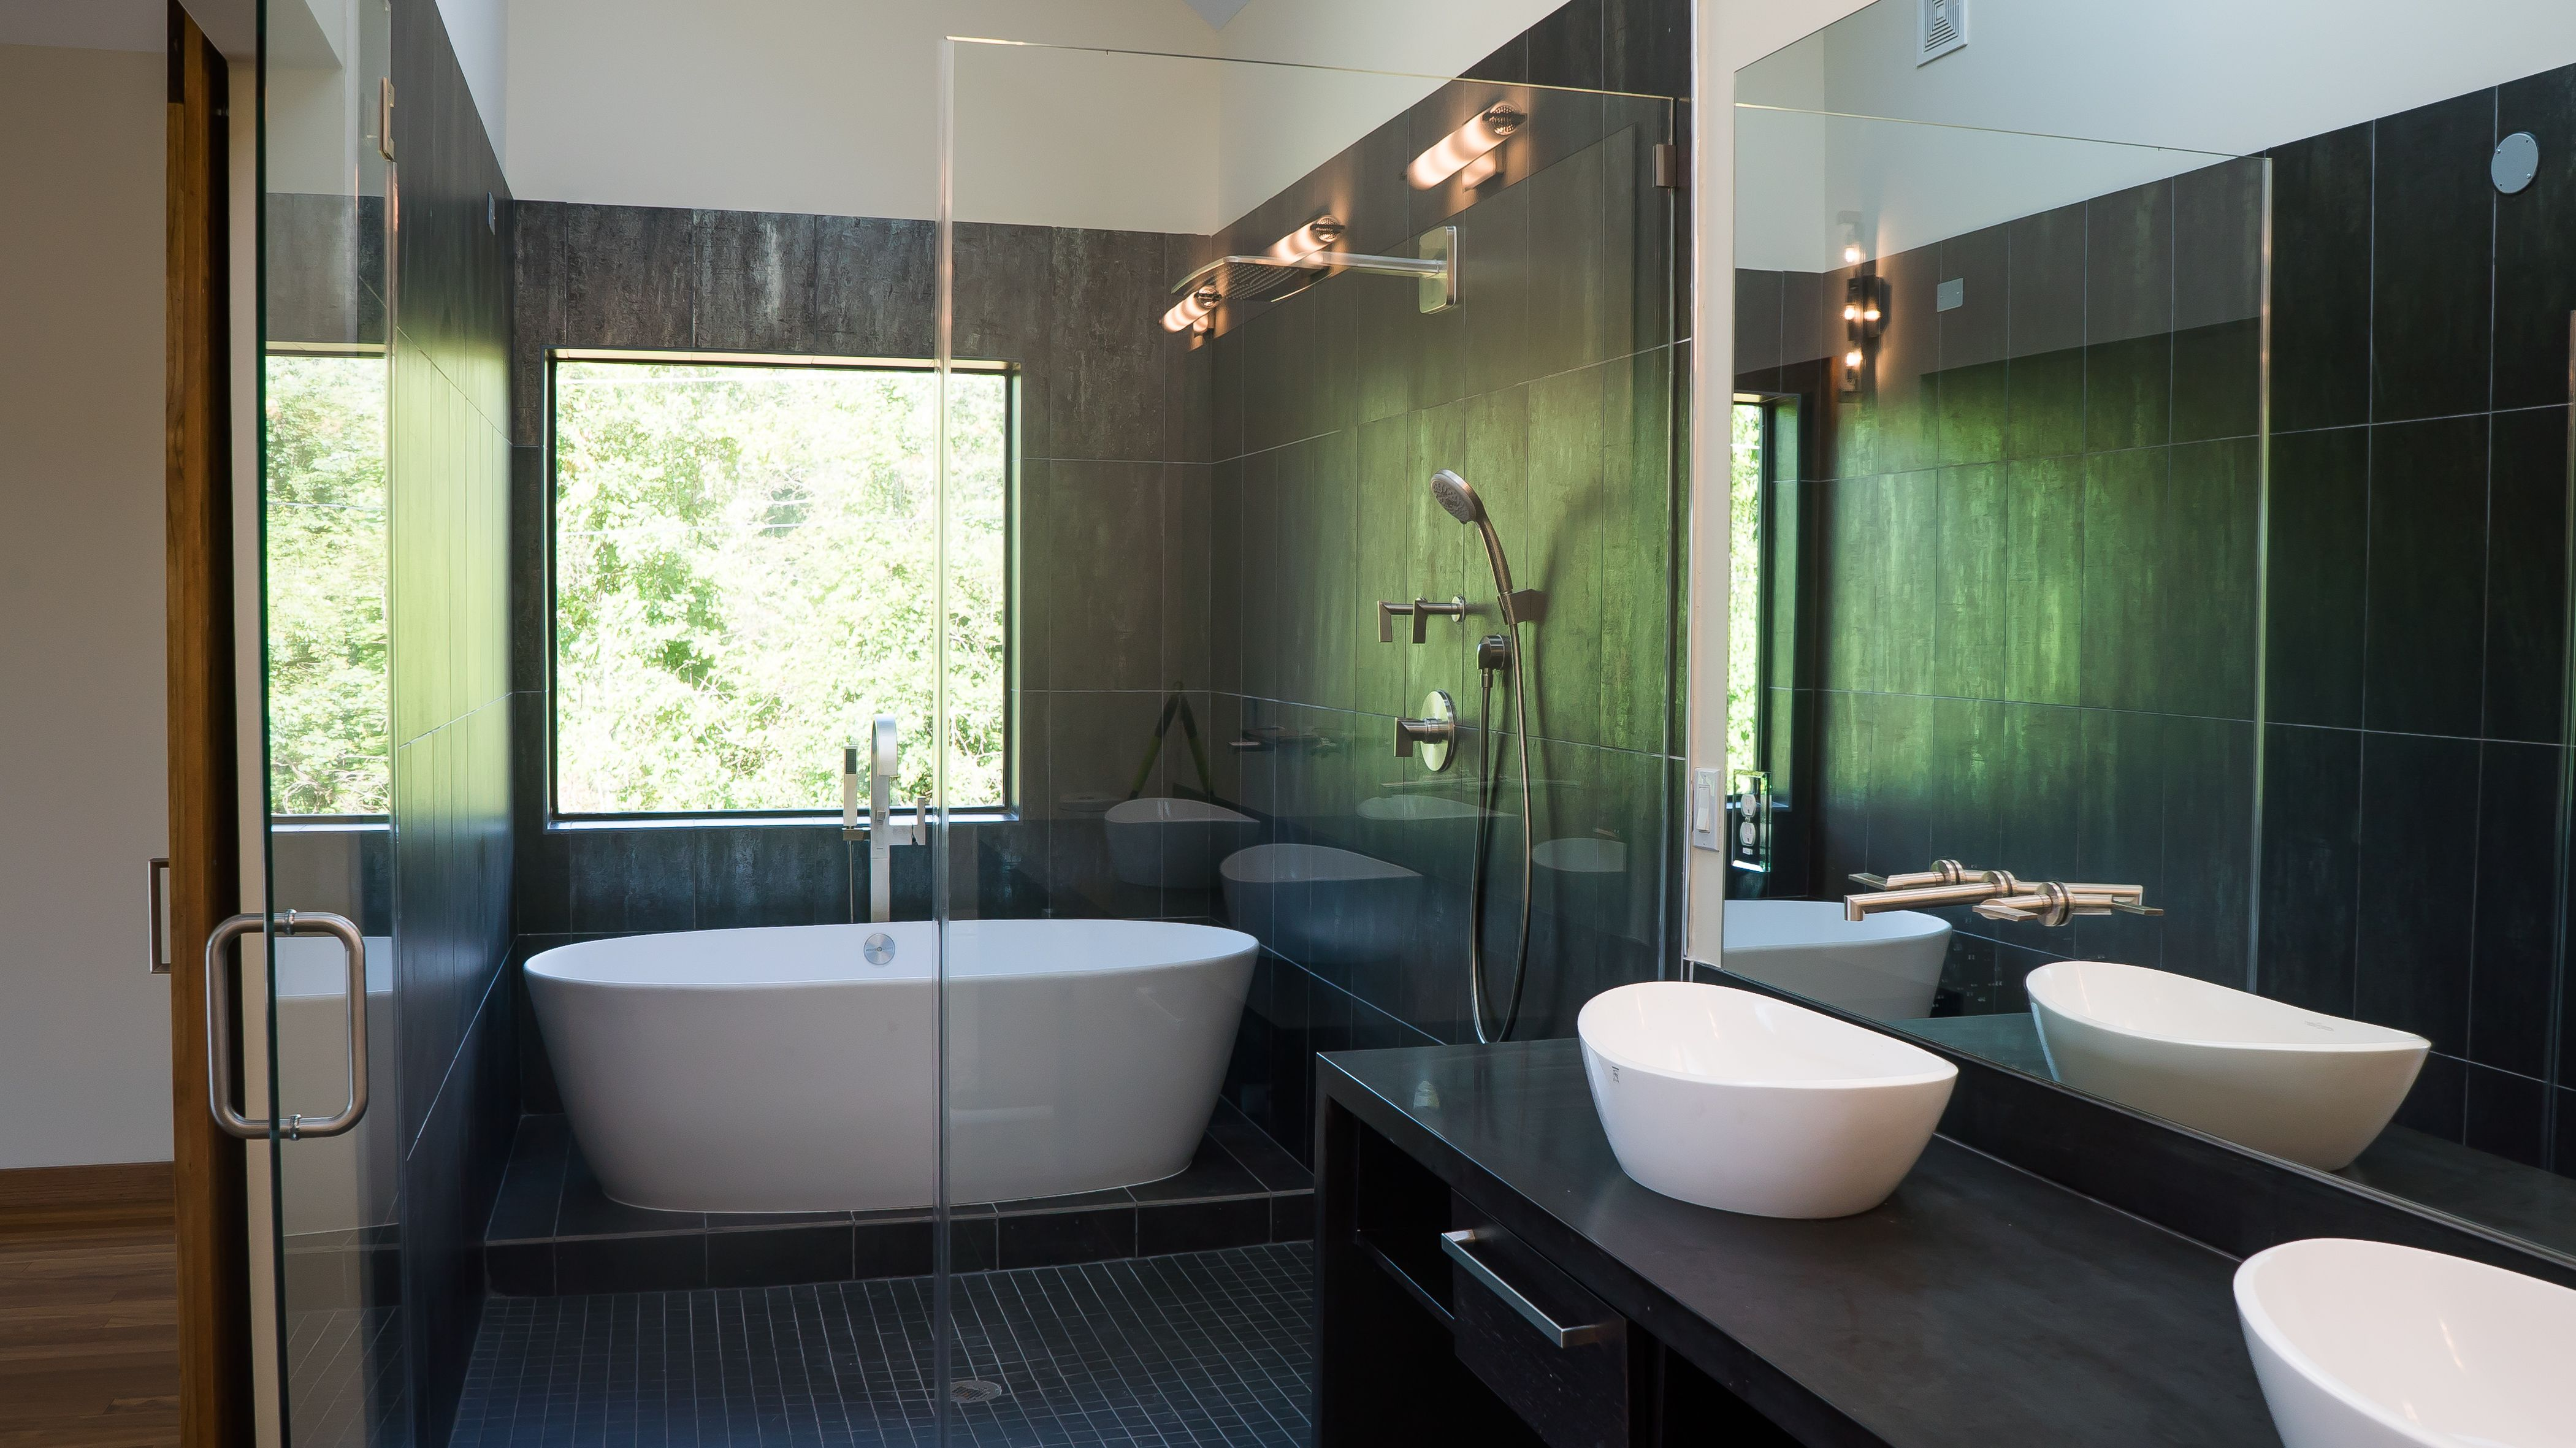 Modern spa bathroom design ideas designs luxury lifestyle value homes small bathroom interior bathroom picture ideas small modern bathroom design ideas